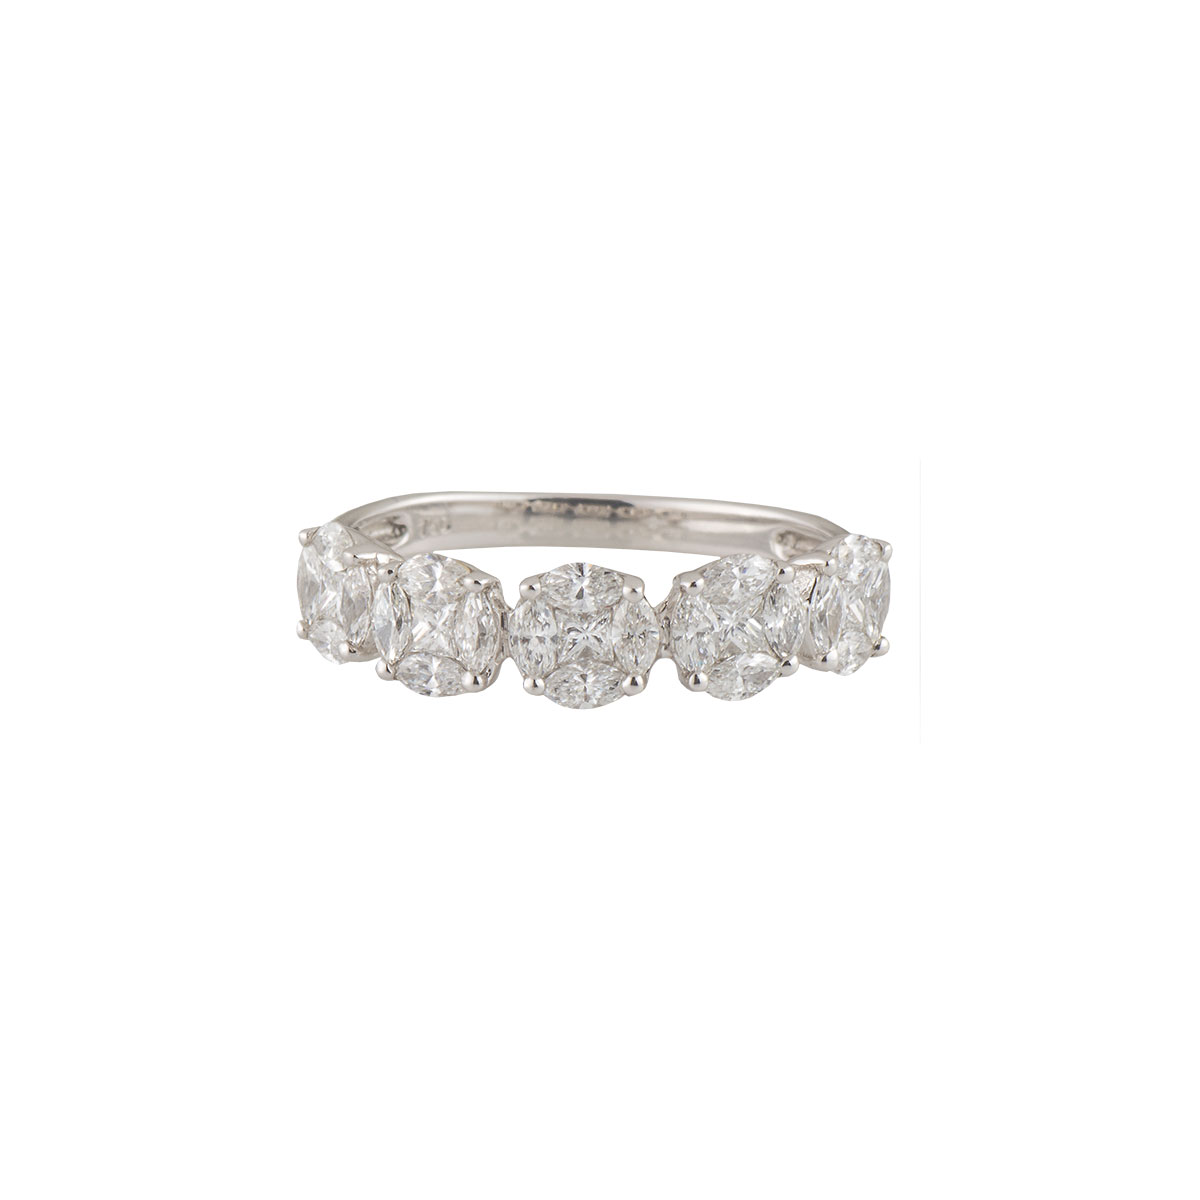 White Gold Diamond Cluster Eternity Ring 0.91ct G-H/VS-VVS